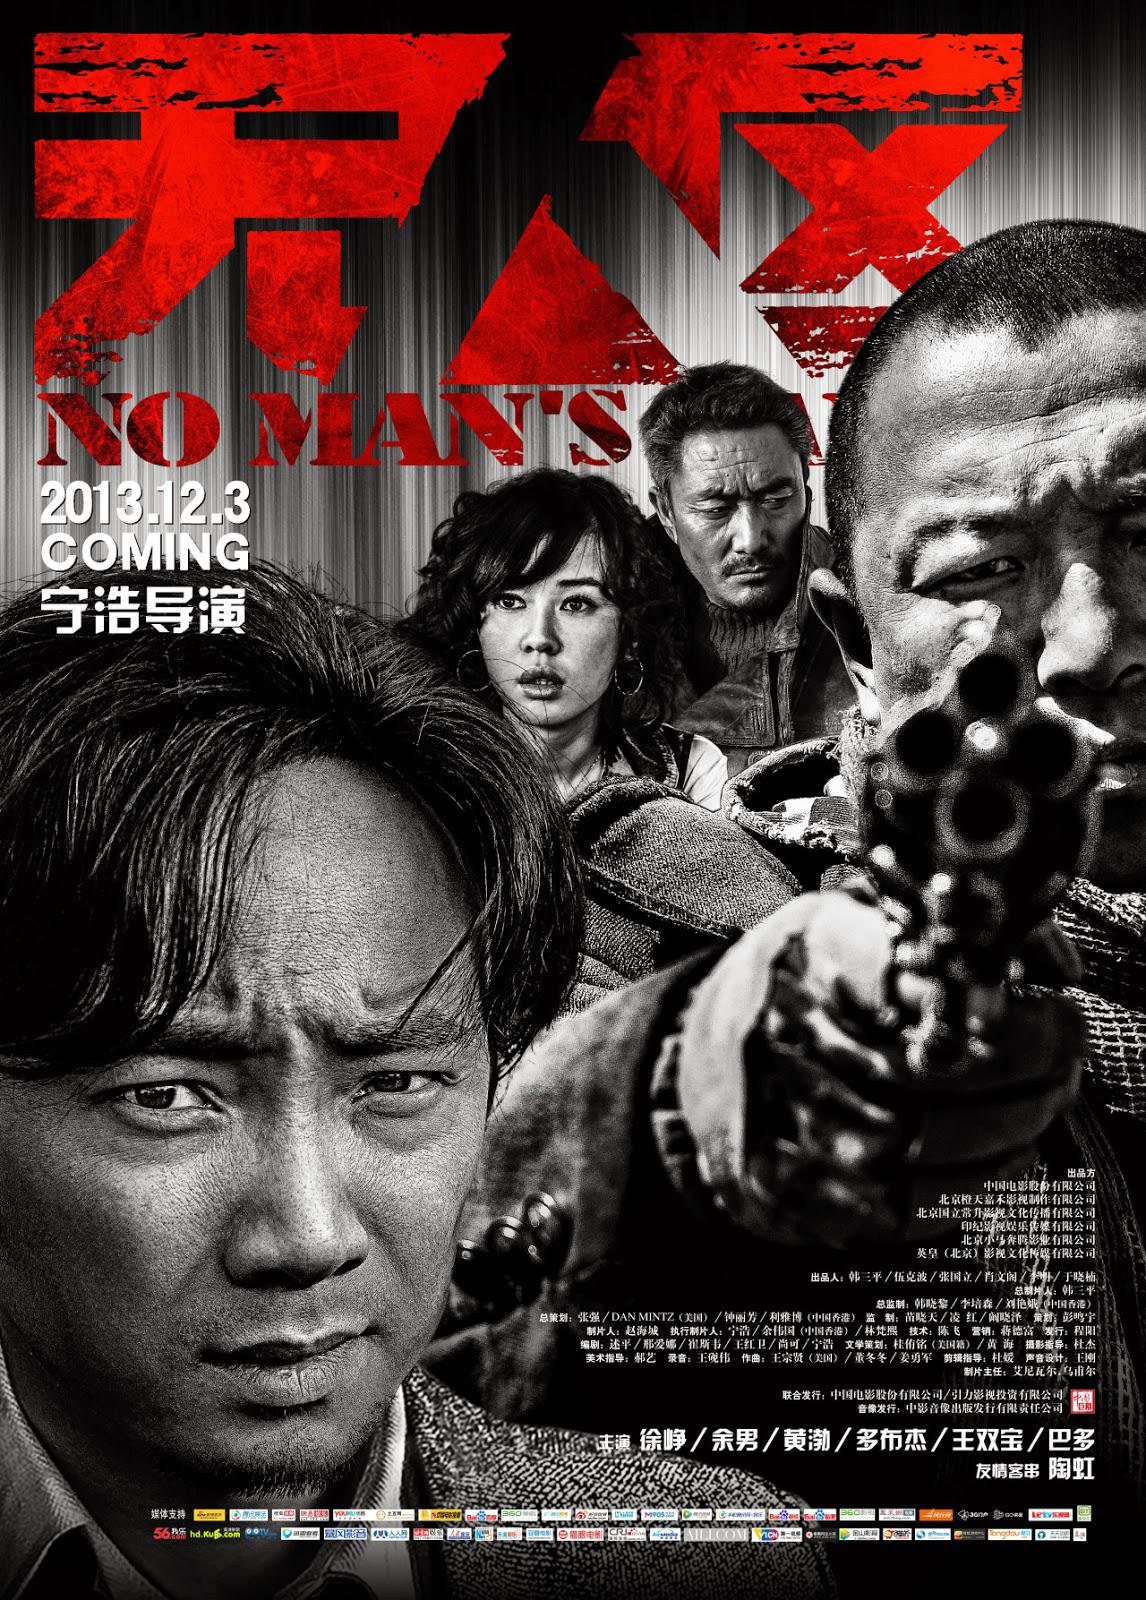 No man's land 2013 (Vostfr)